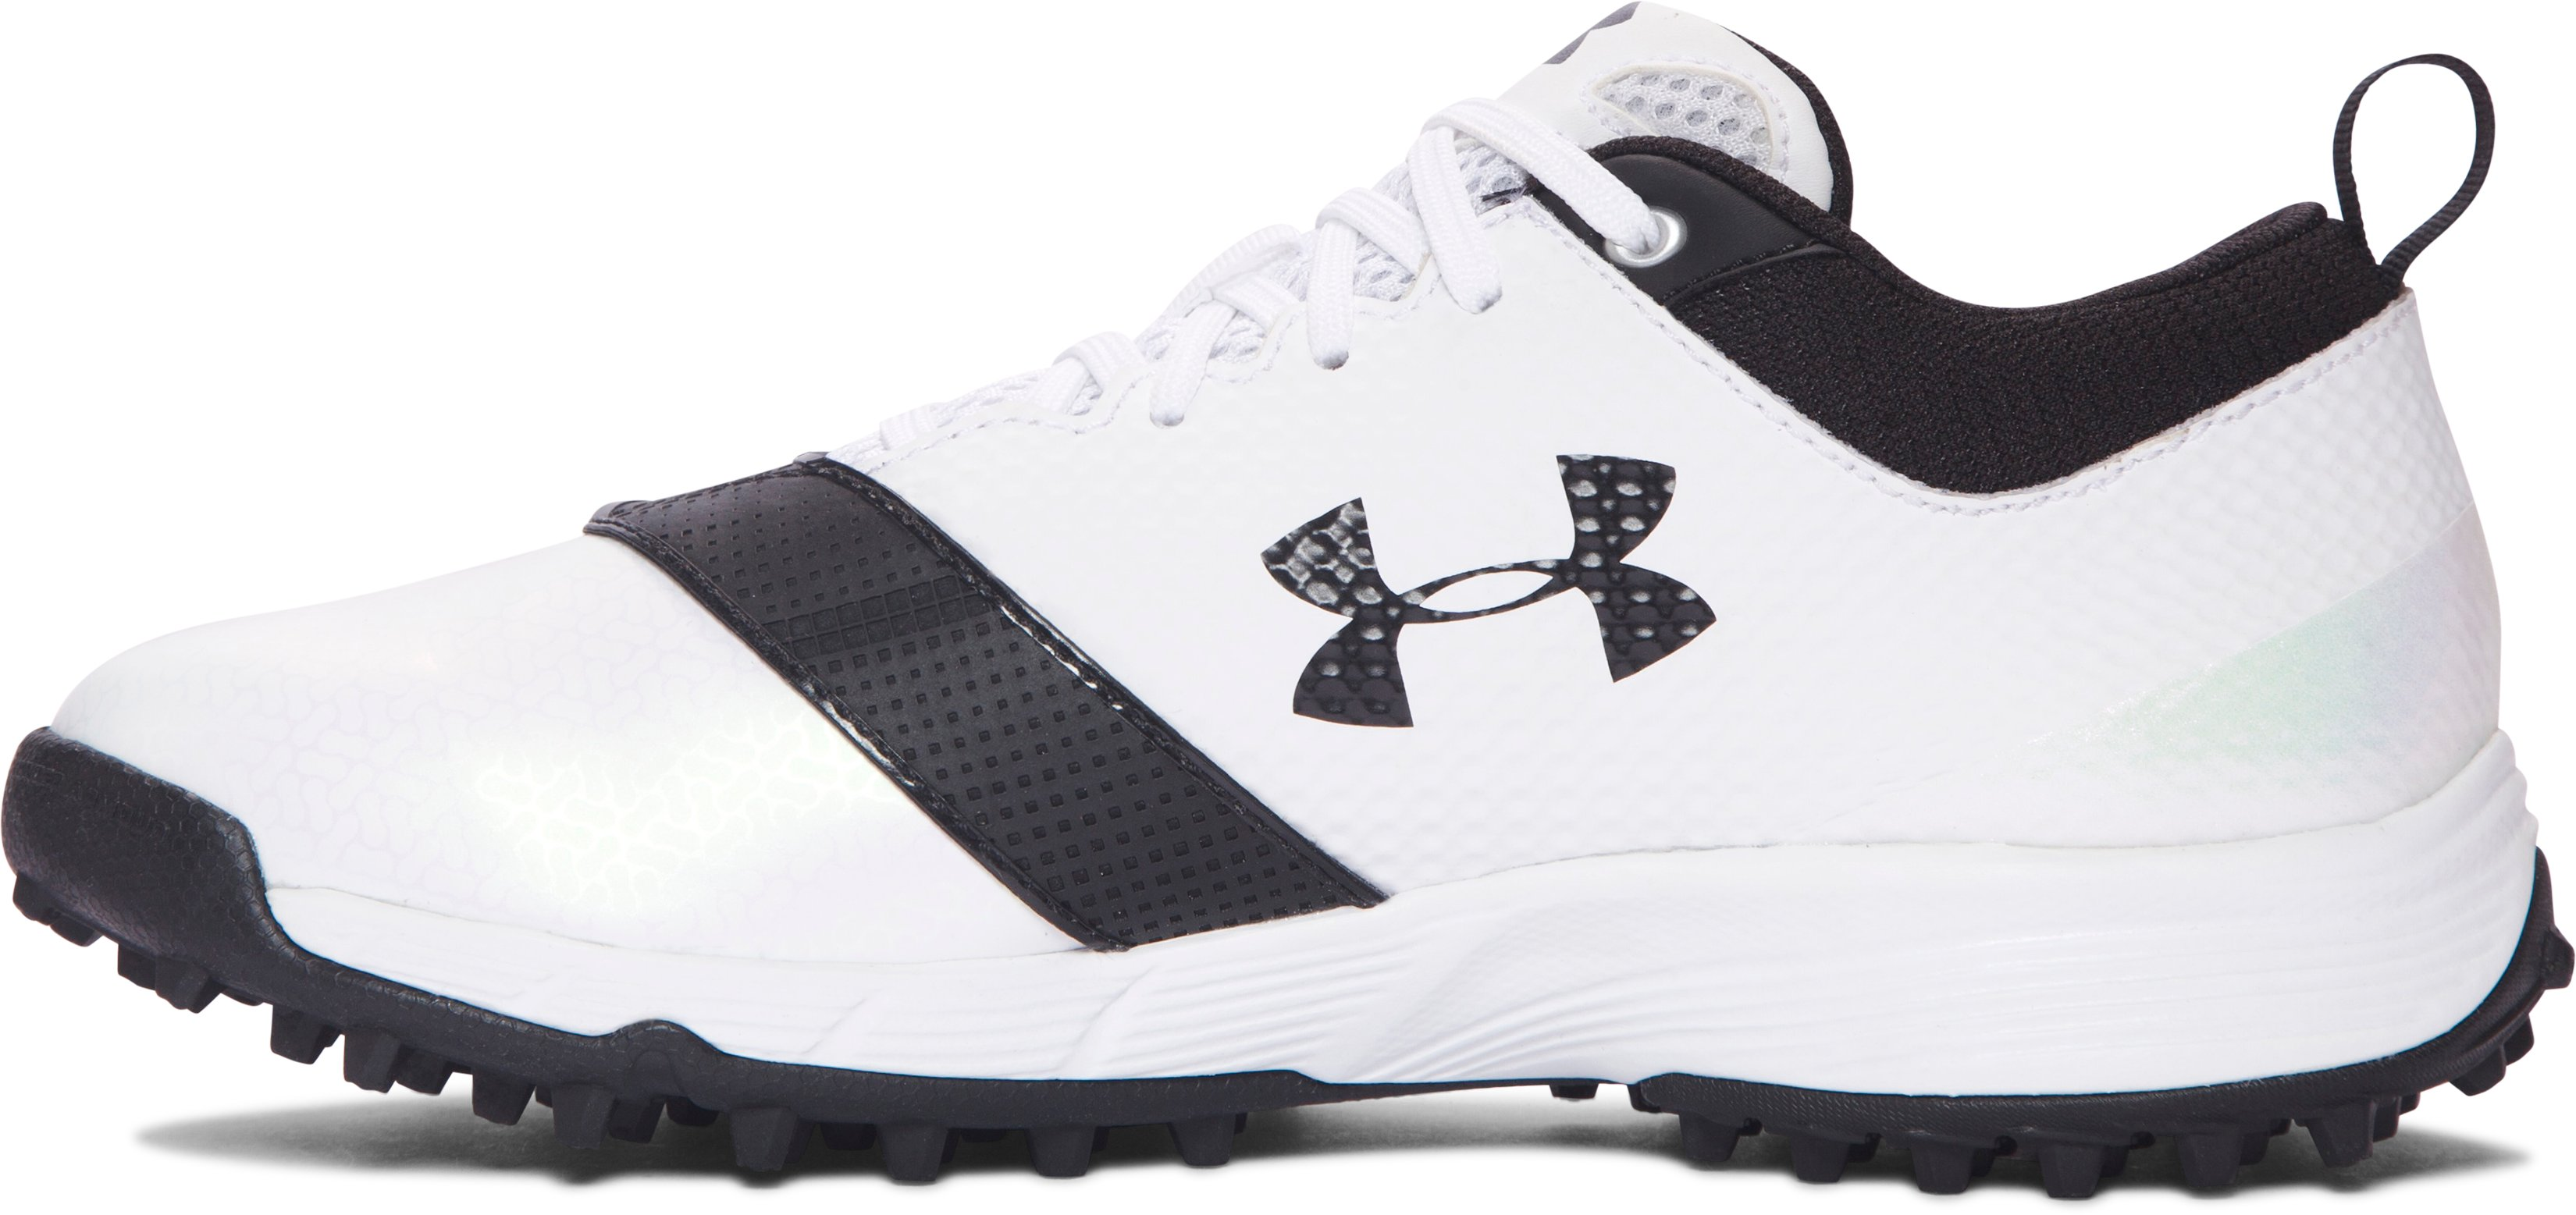 Women's UA Finisher Turf Lacrosse Cleats, White